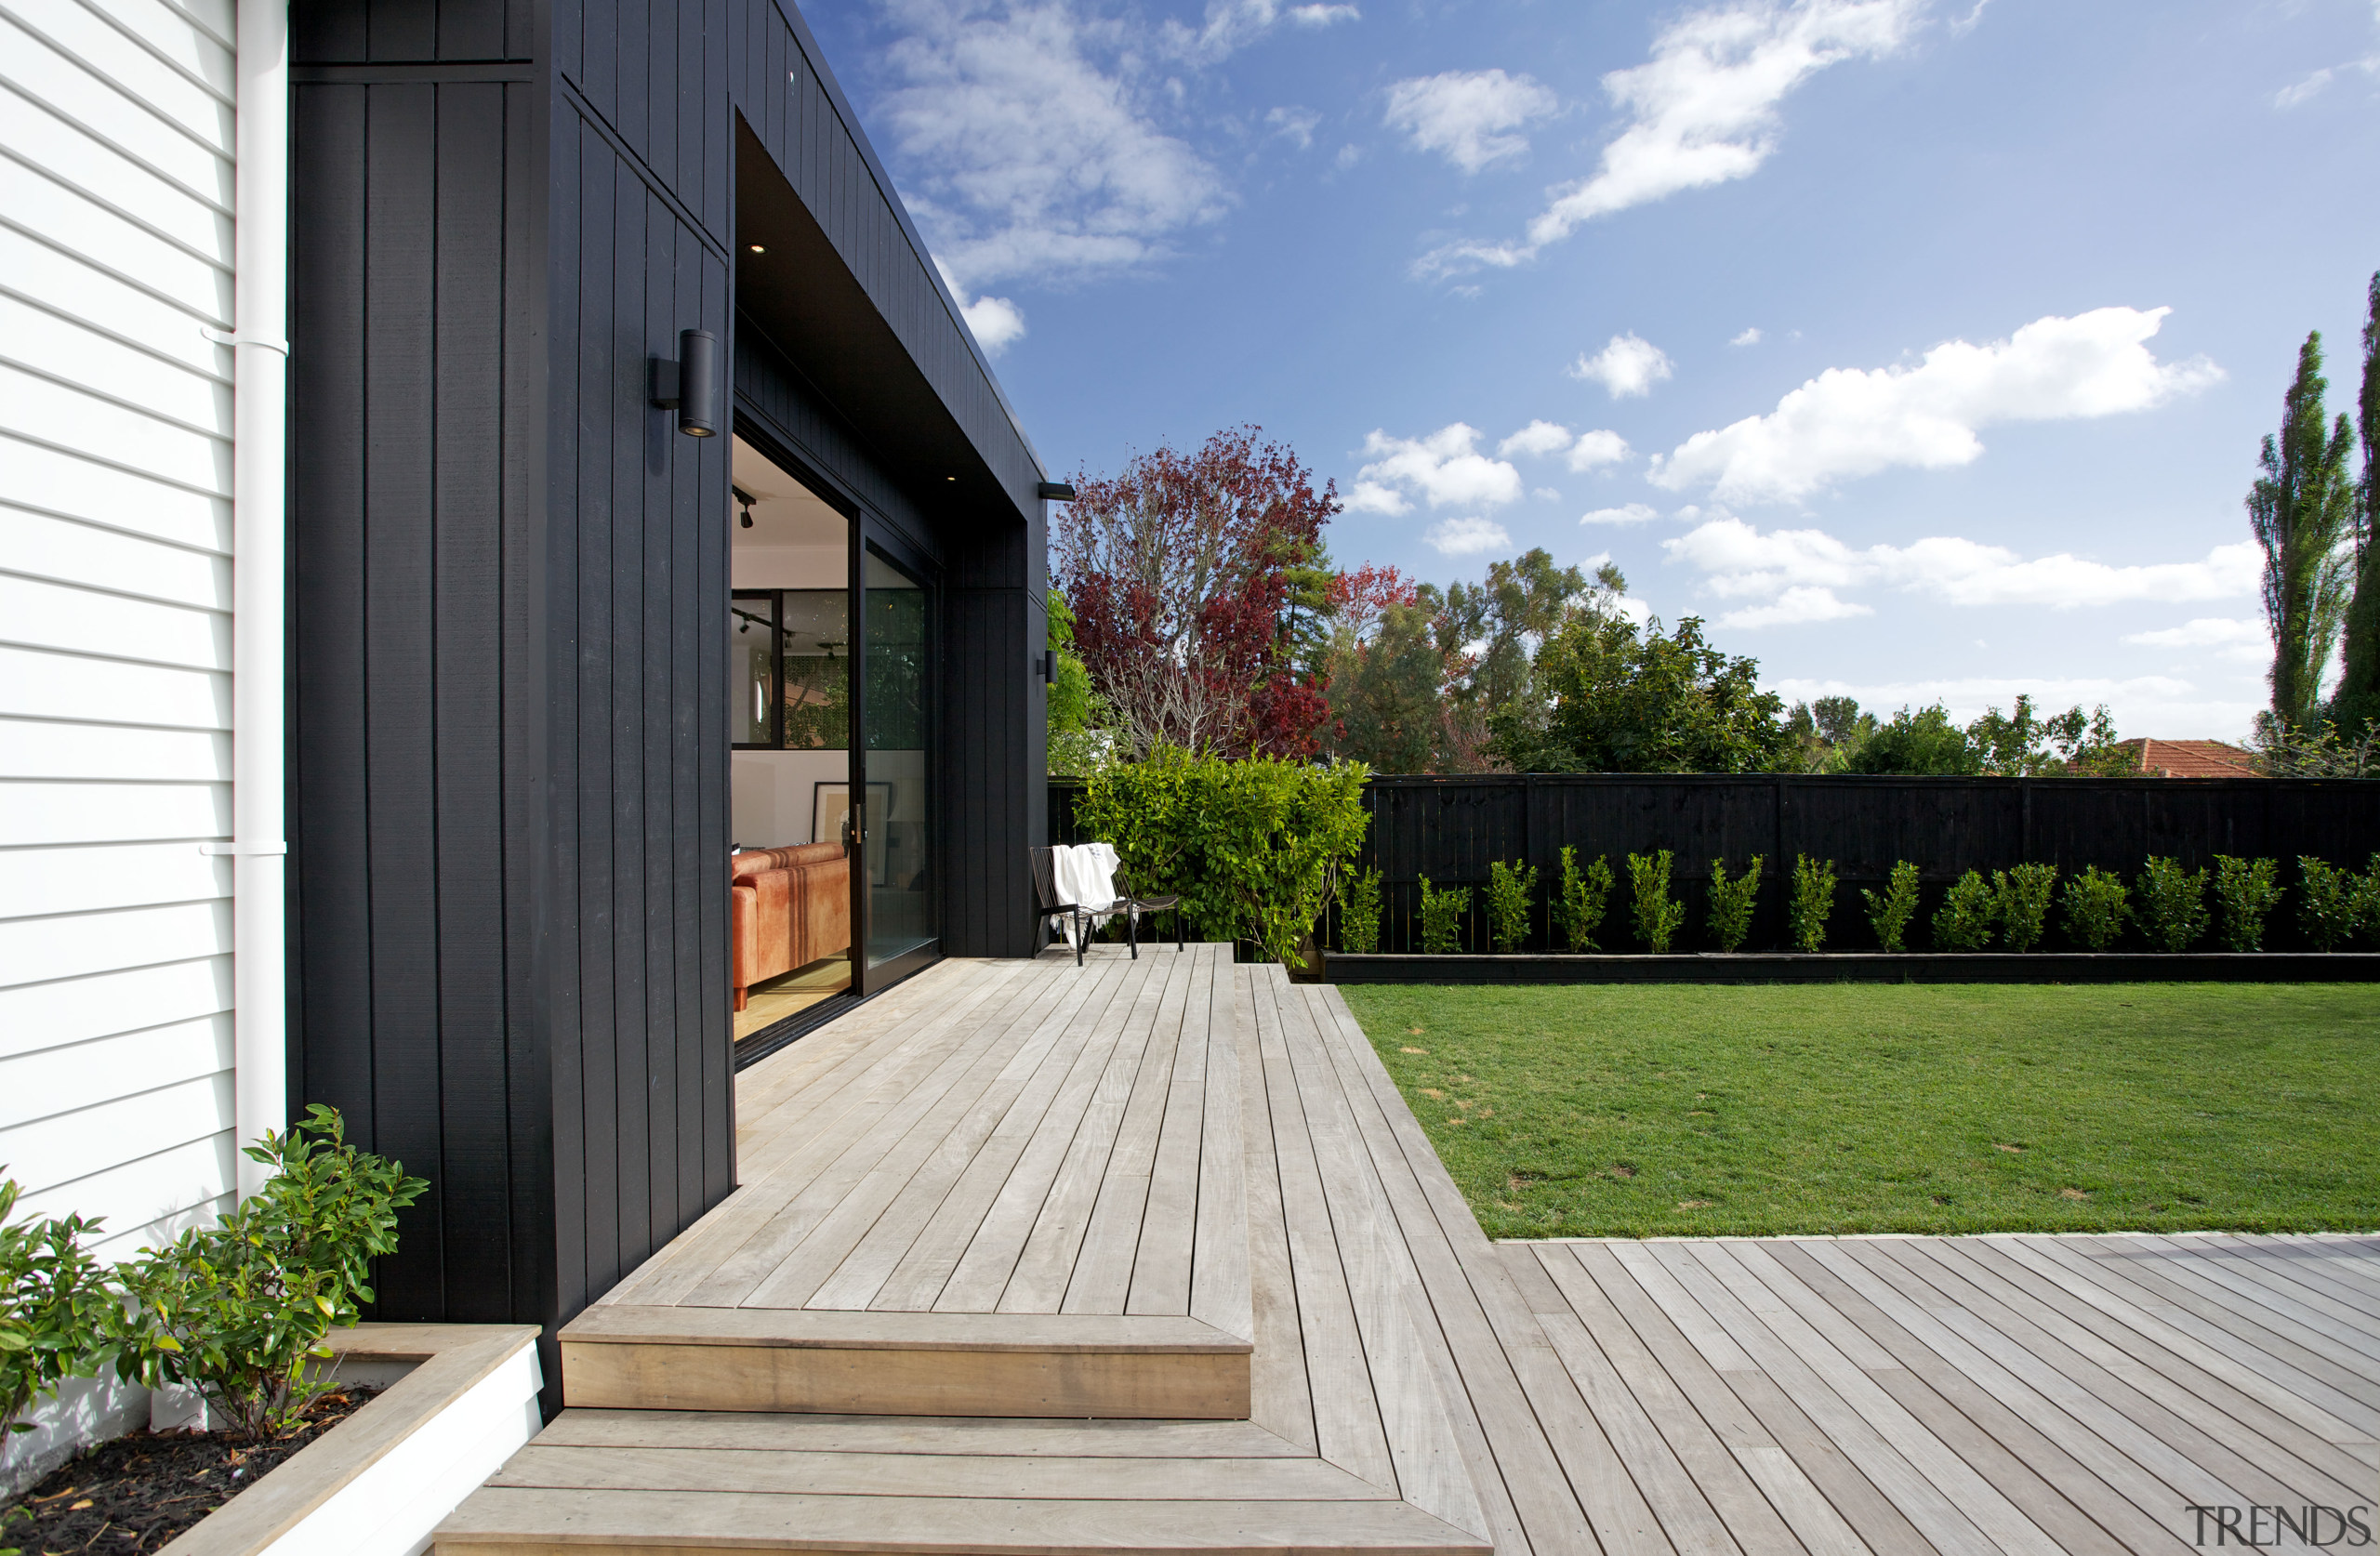 Contemporary black box addition to older home the architecture, backyard, cottage, deck, facade, grass, home, house, outdoor structure, property, real estate, residential area, siding, wood